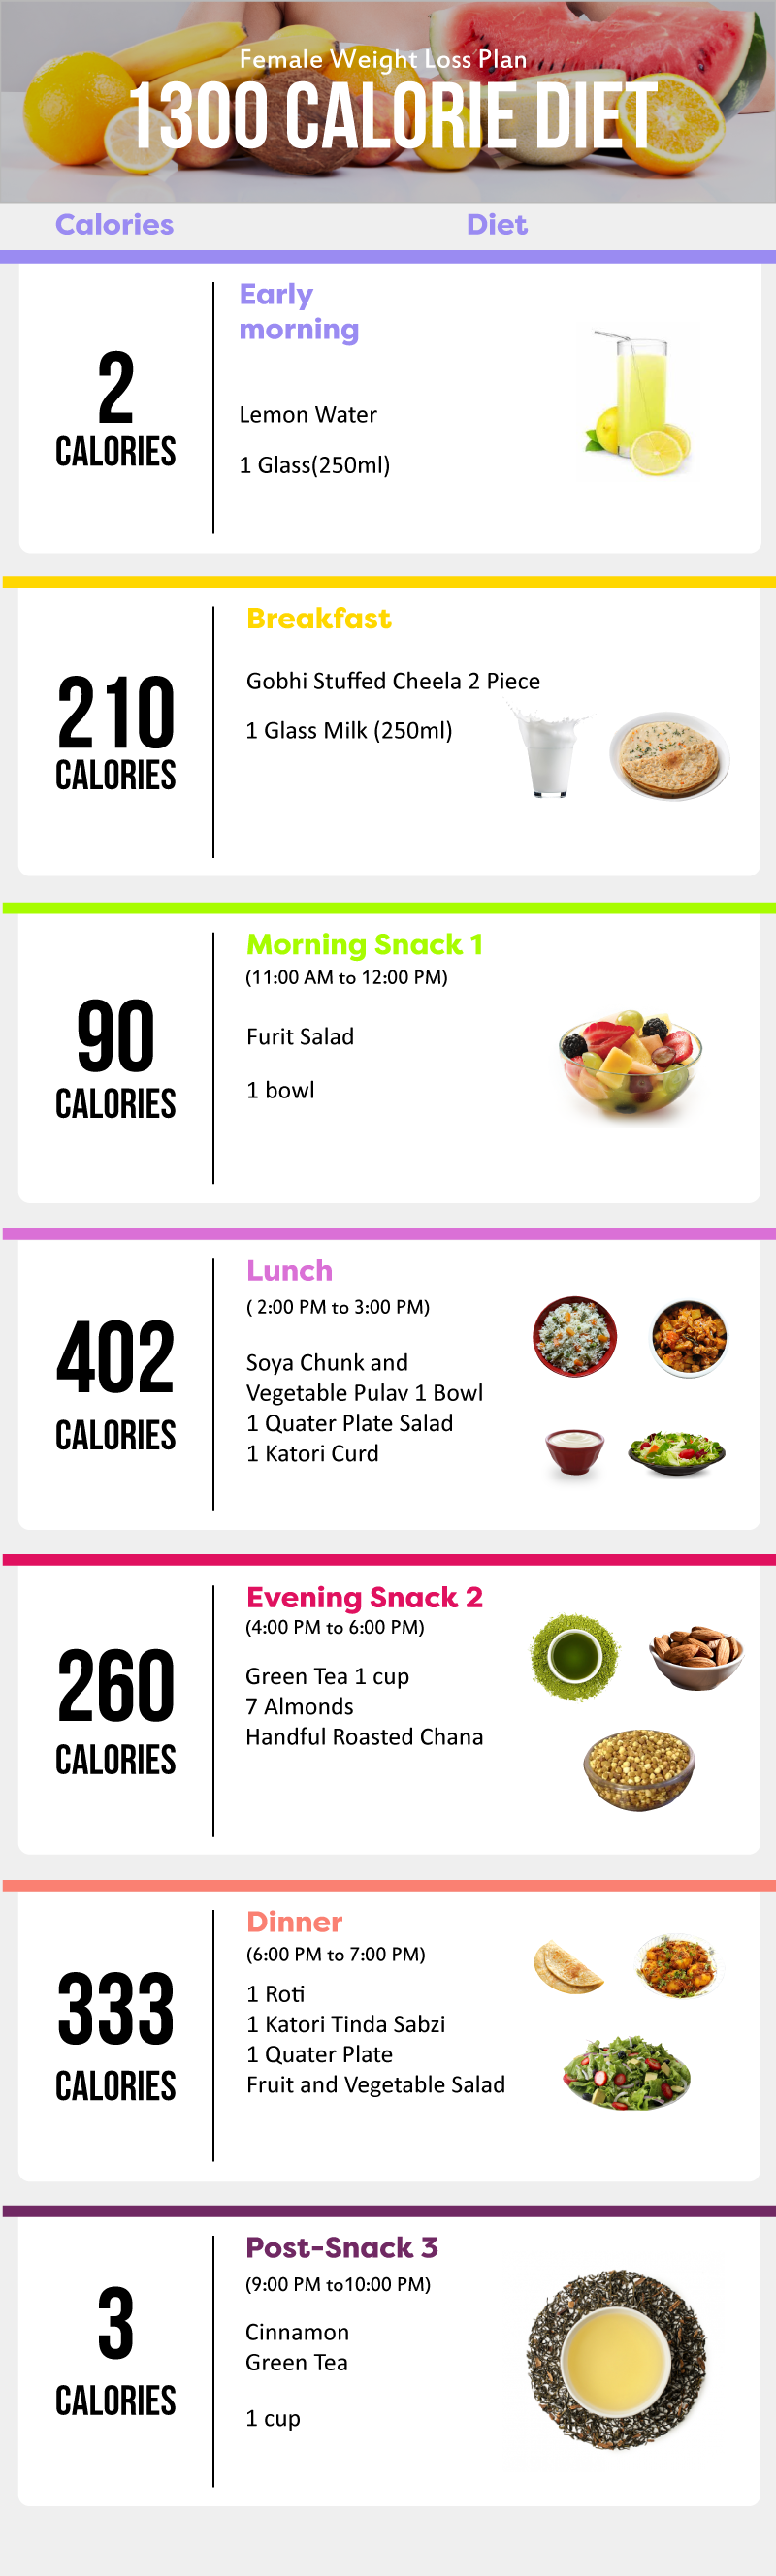 Sample indian diet chart for weight loss for female 1300 calories sample indian diet chart for weight loss for female 1300 calories loseweight dietplan nvjuhfo Gallery